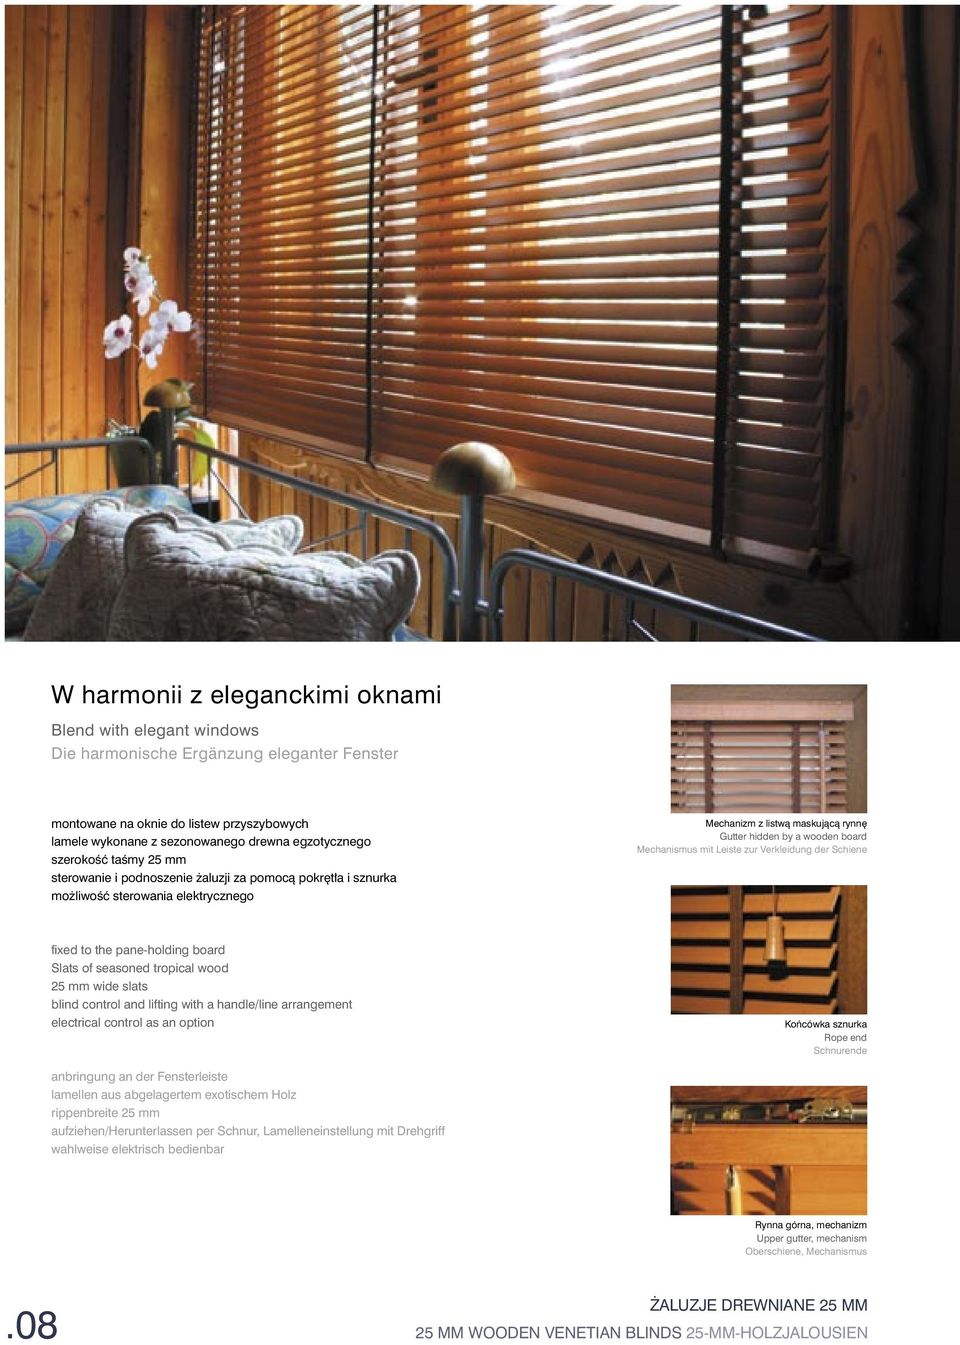 mit Leiste zur Verkleidung der Schiene fixed to the pane-holding board Slats of seasoned tropical wood 25 mm wide slats blind control and lifting with a handle/line arrangement electrical control as